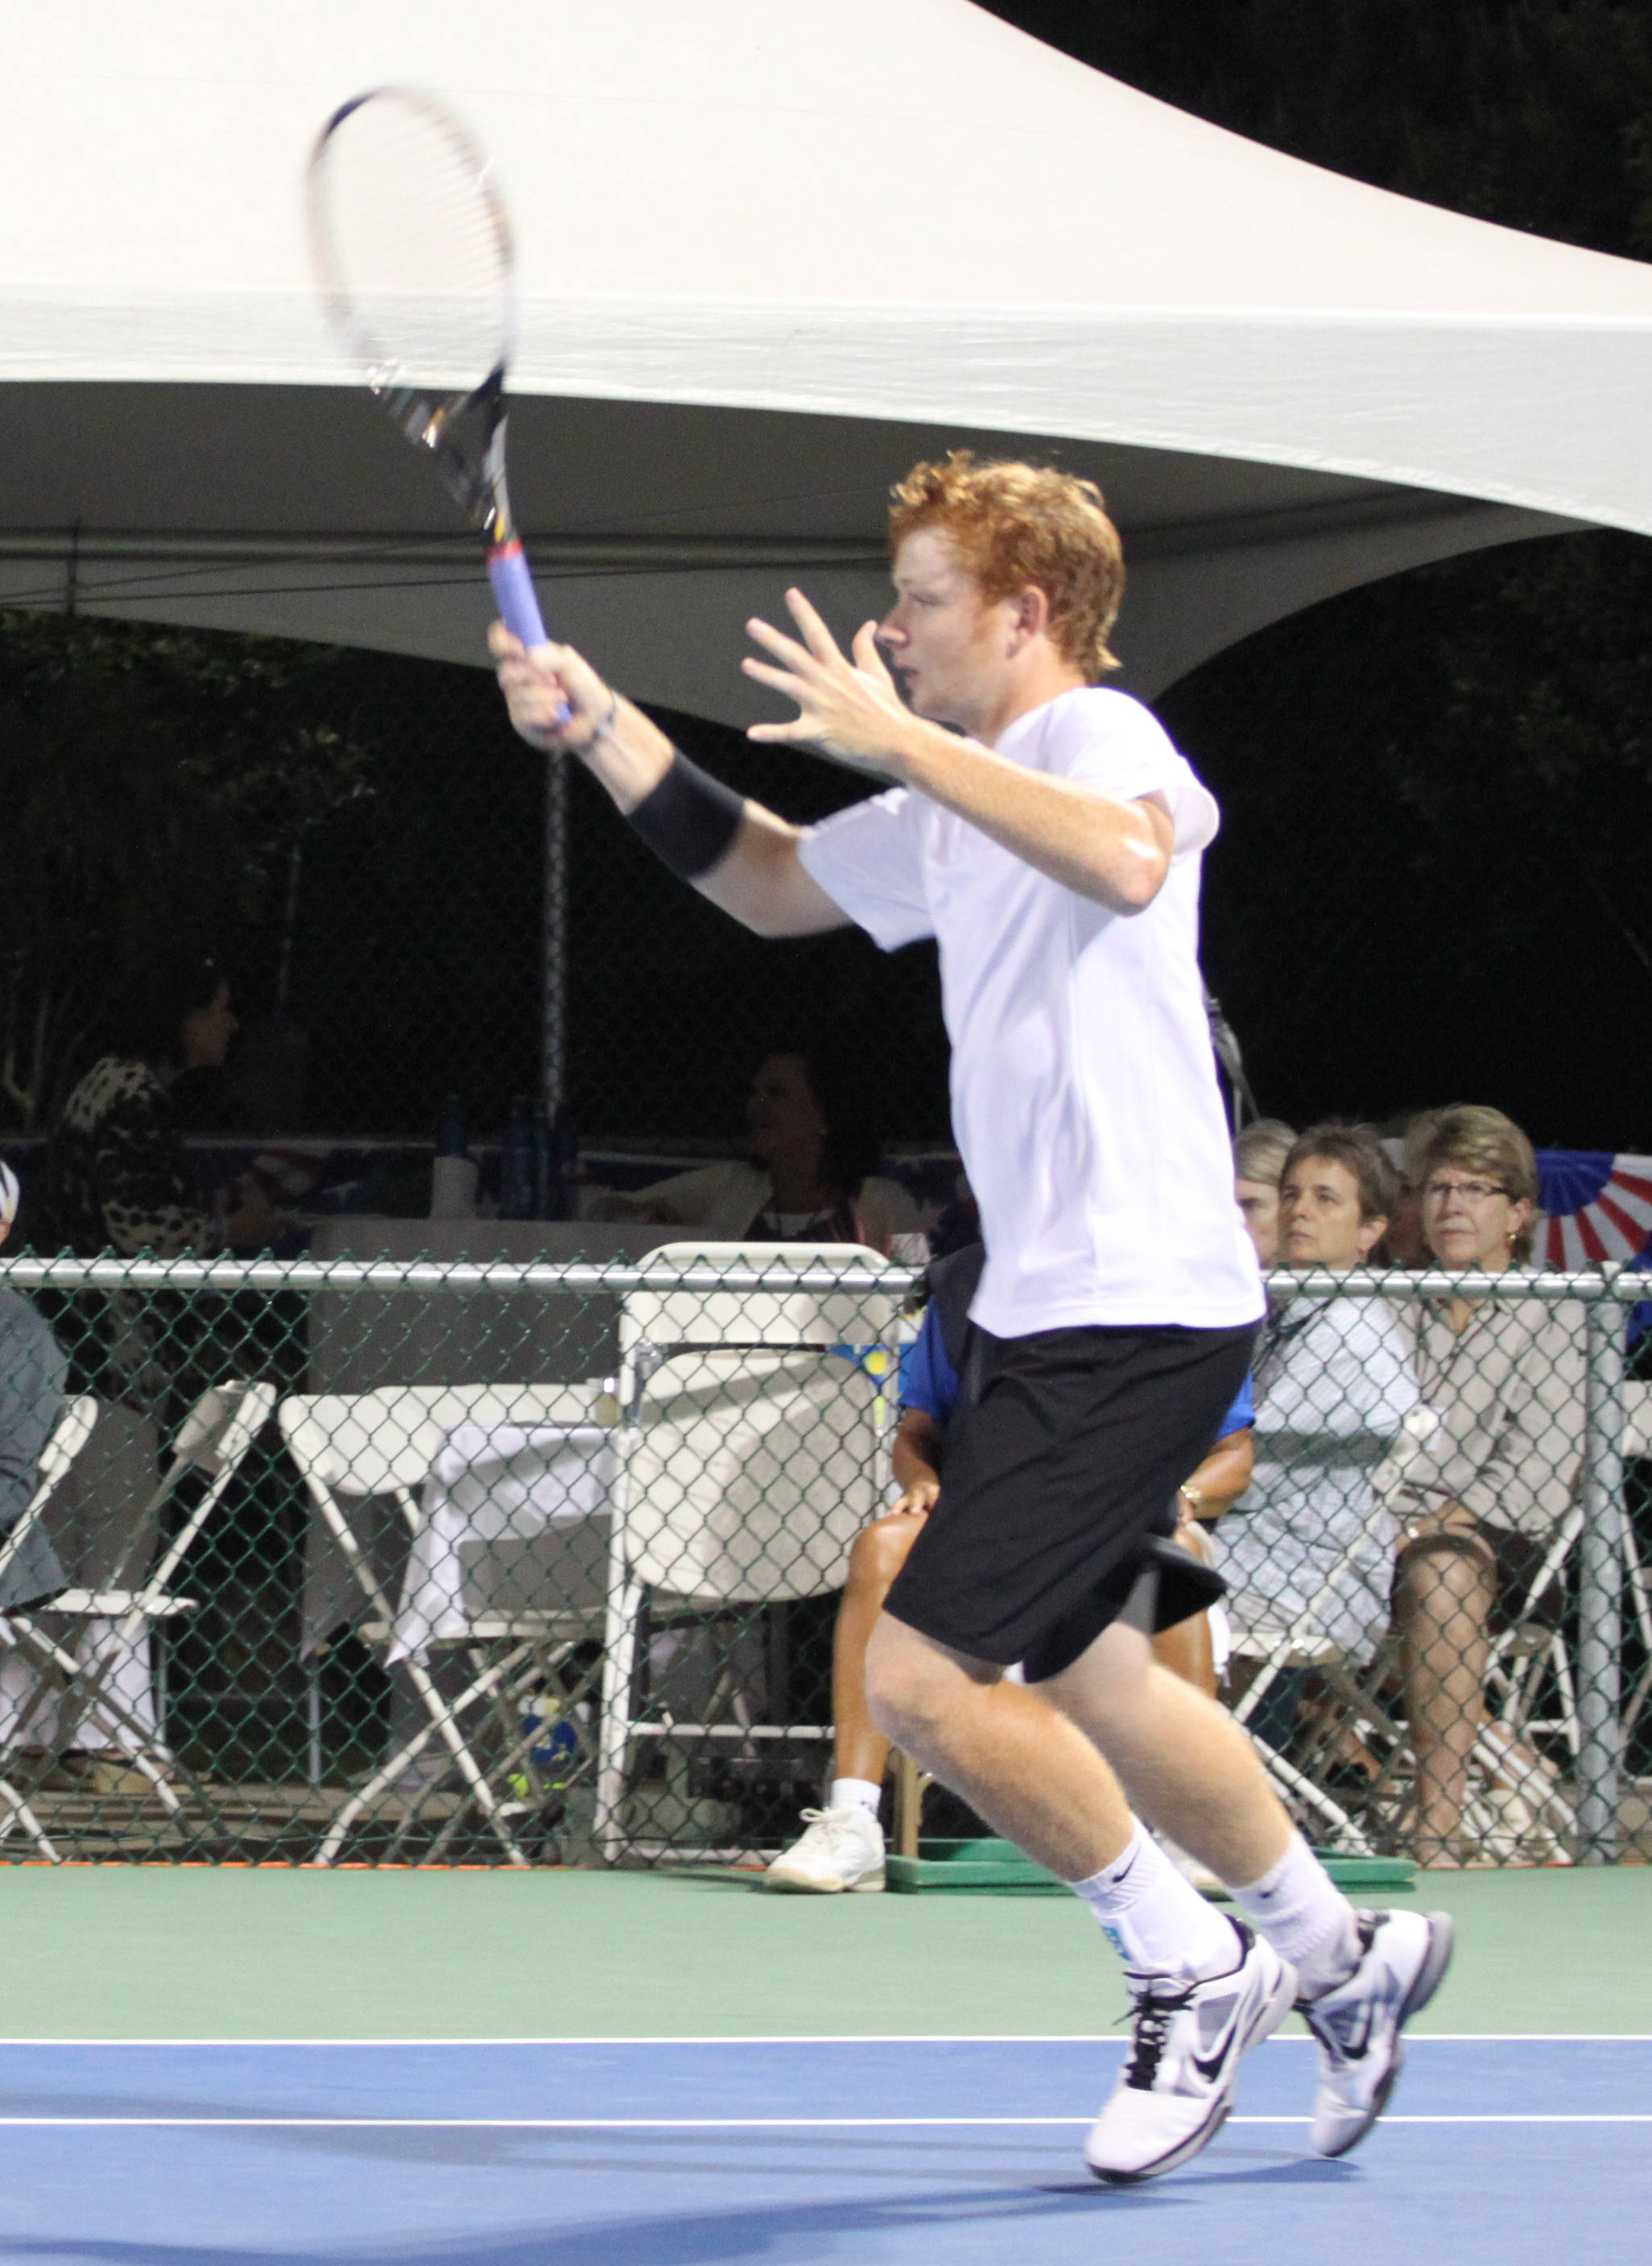 Vahid Mirzadeh and Connor Smith at the USTA Tallahassee Tennis Challenger.